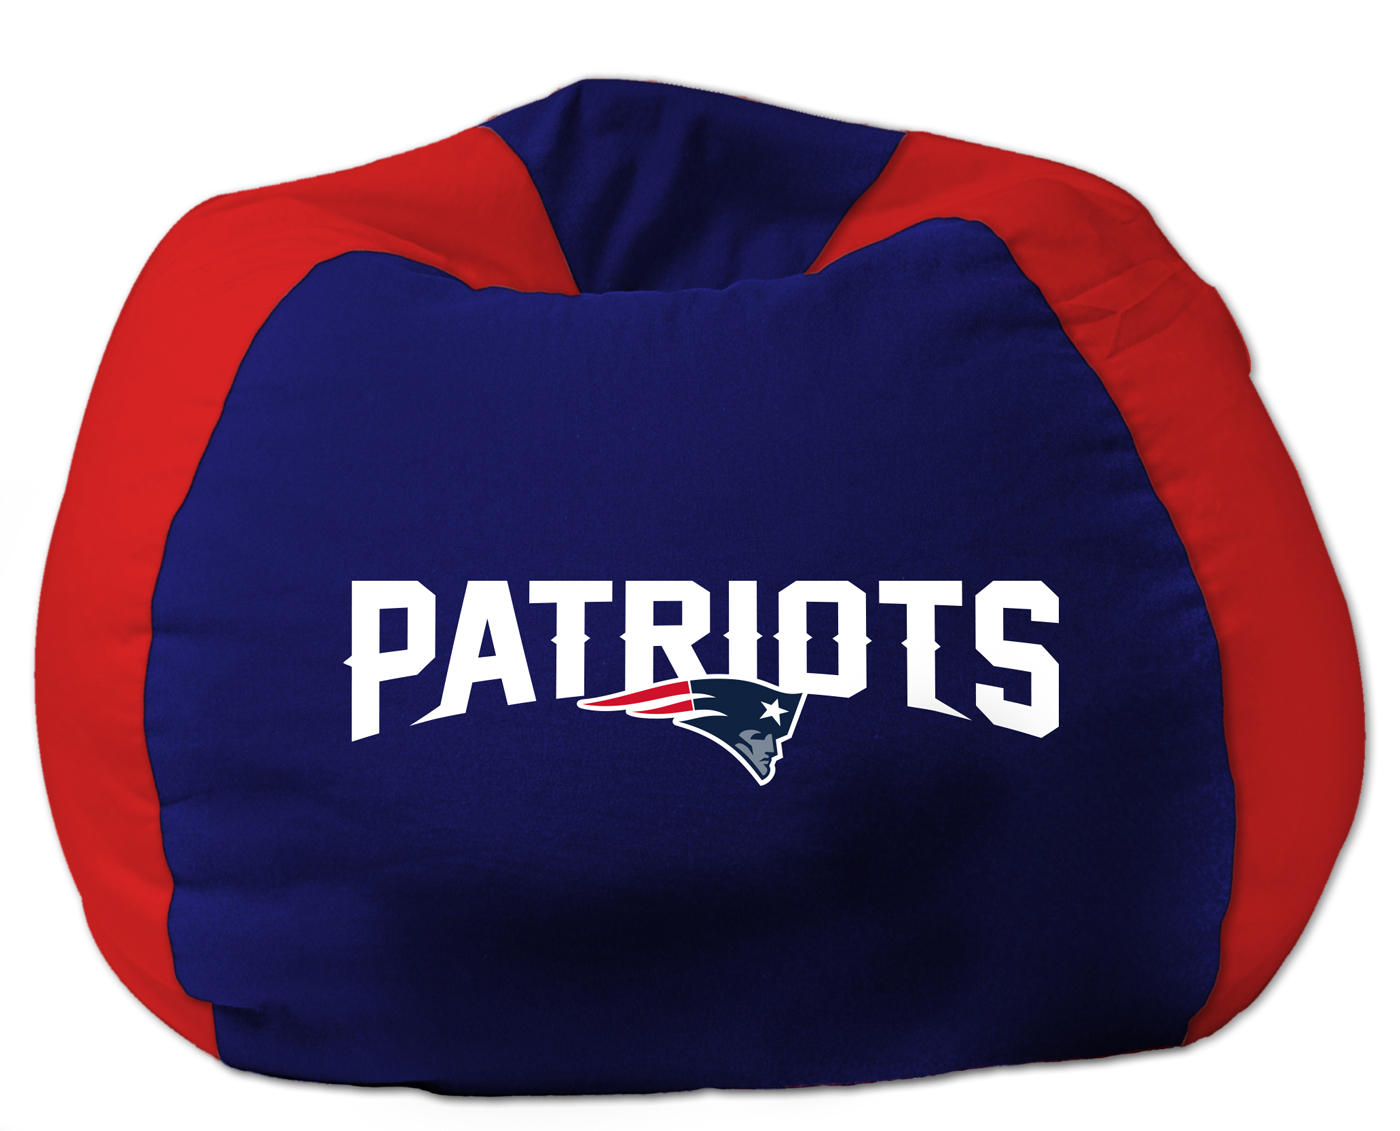 football bean bag chair futon chairs target new england patriots